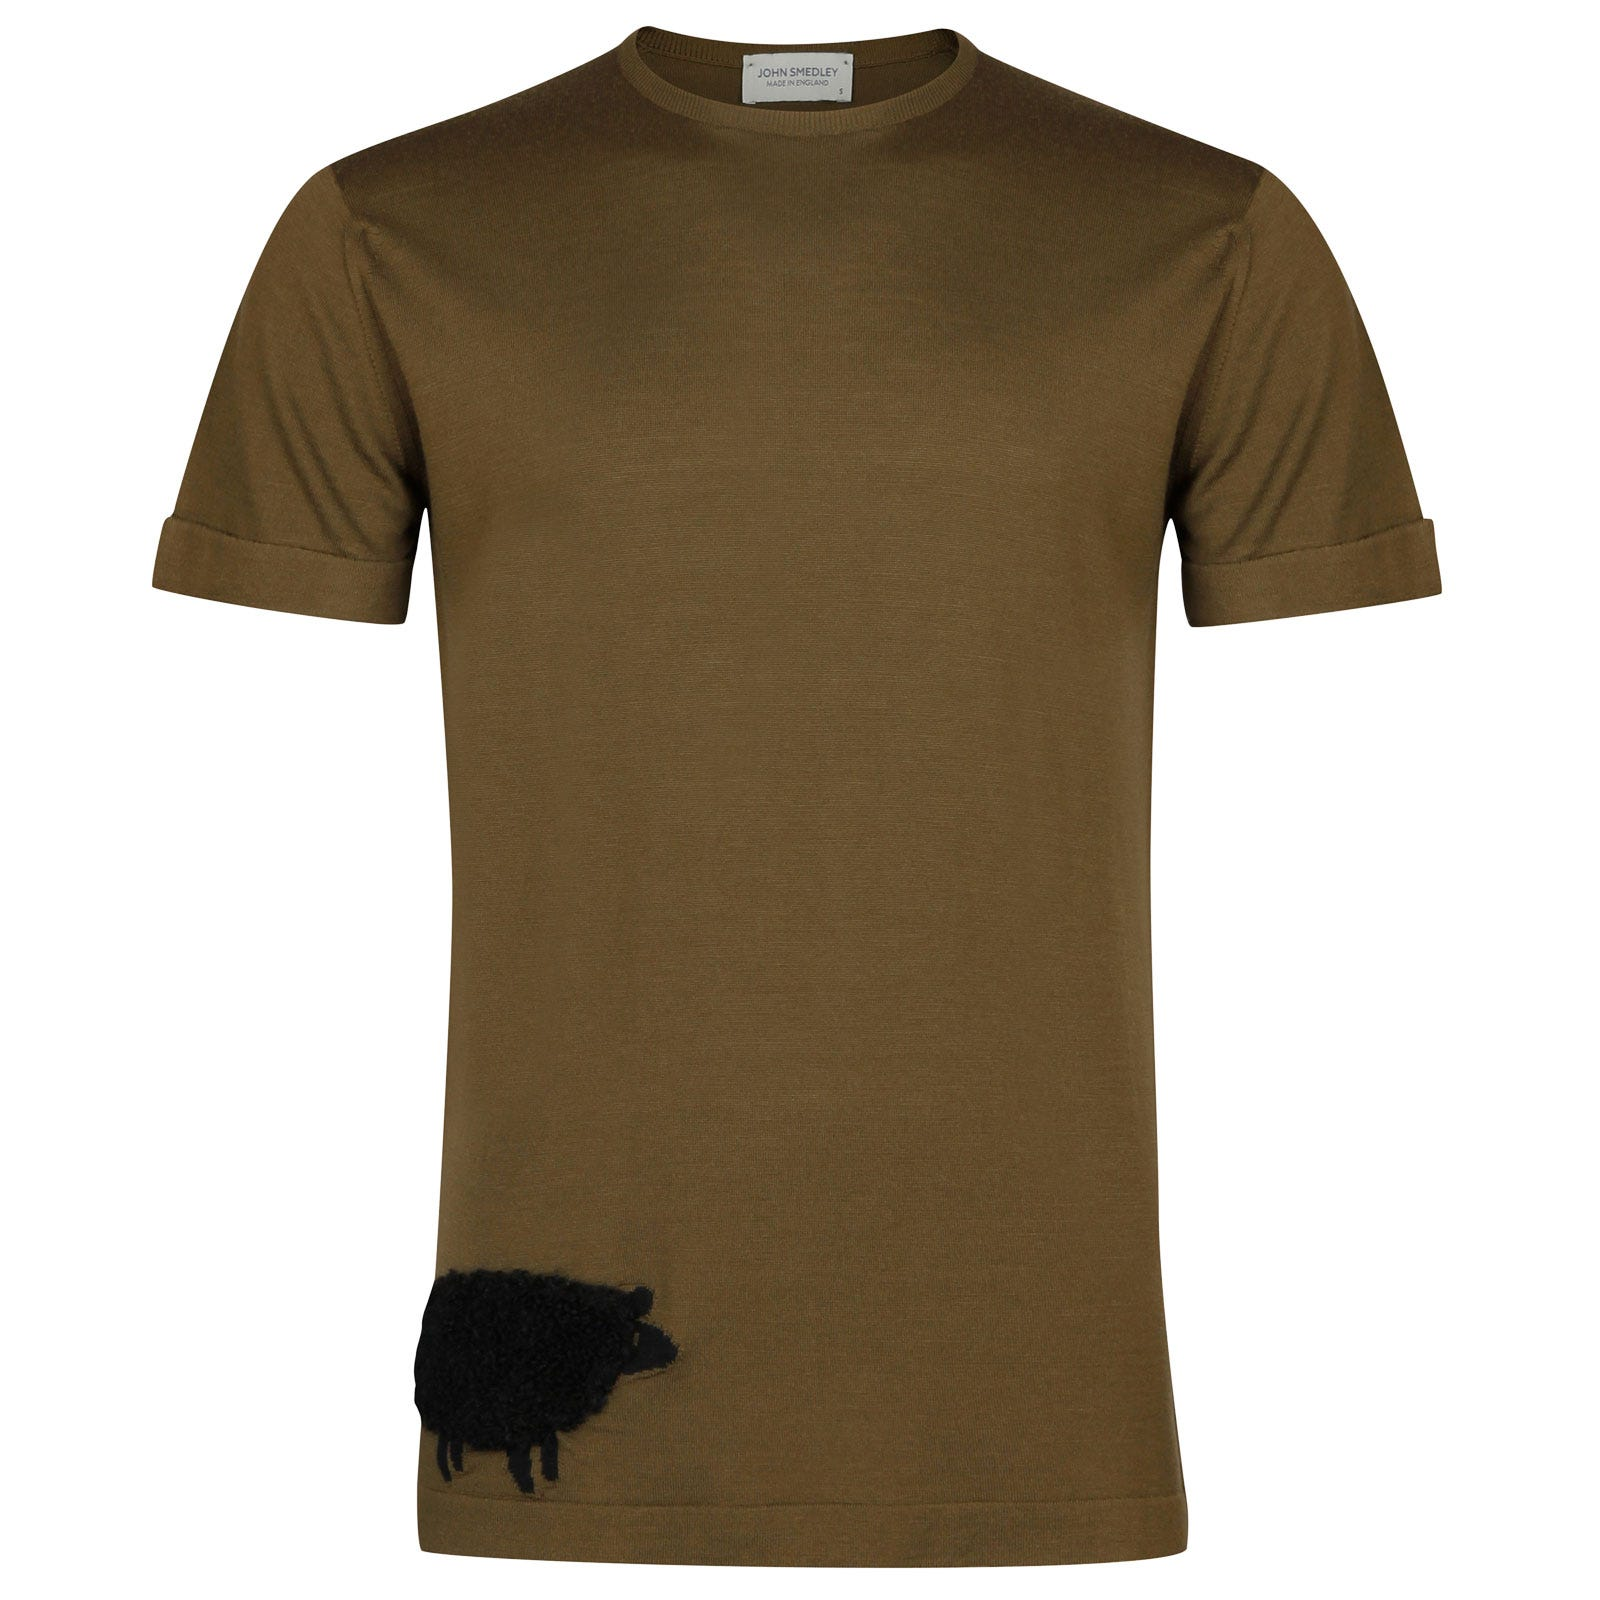 John Smedley bleat Merino Wool T-shirt in Kielder Green/Black-XS